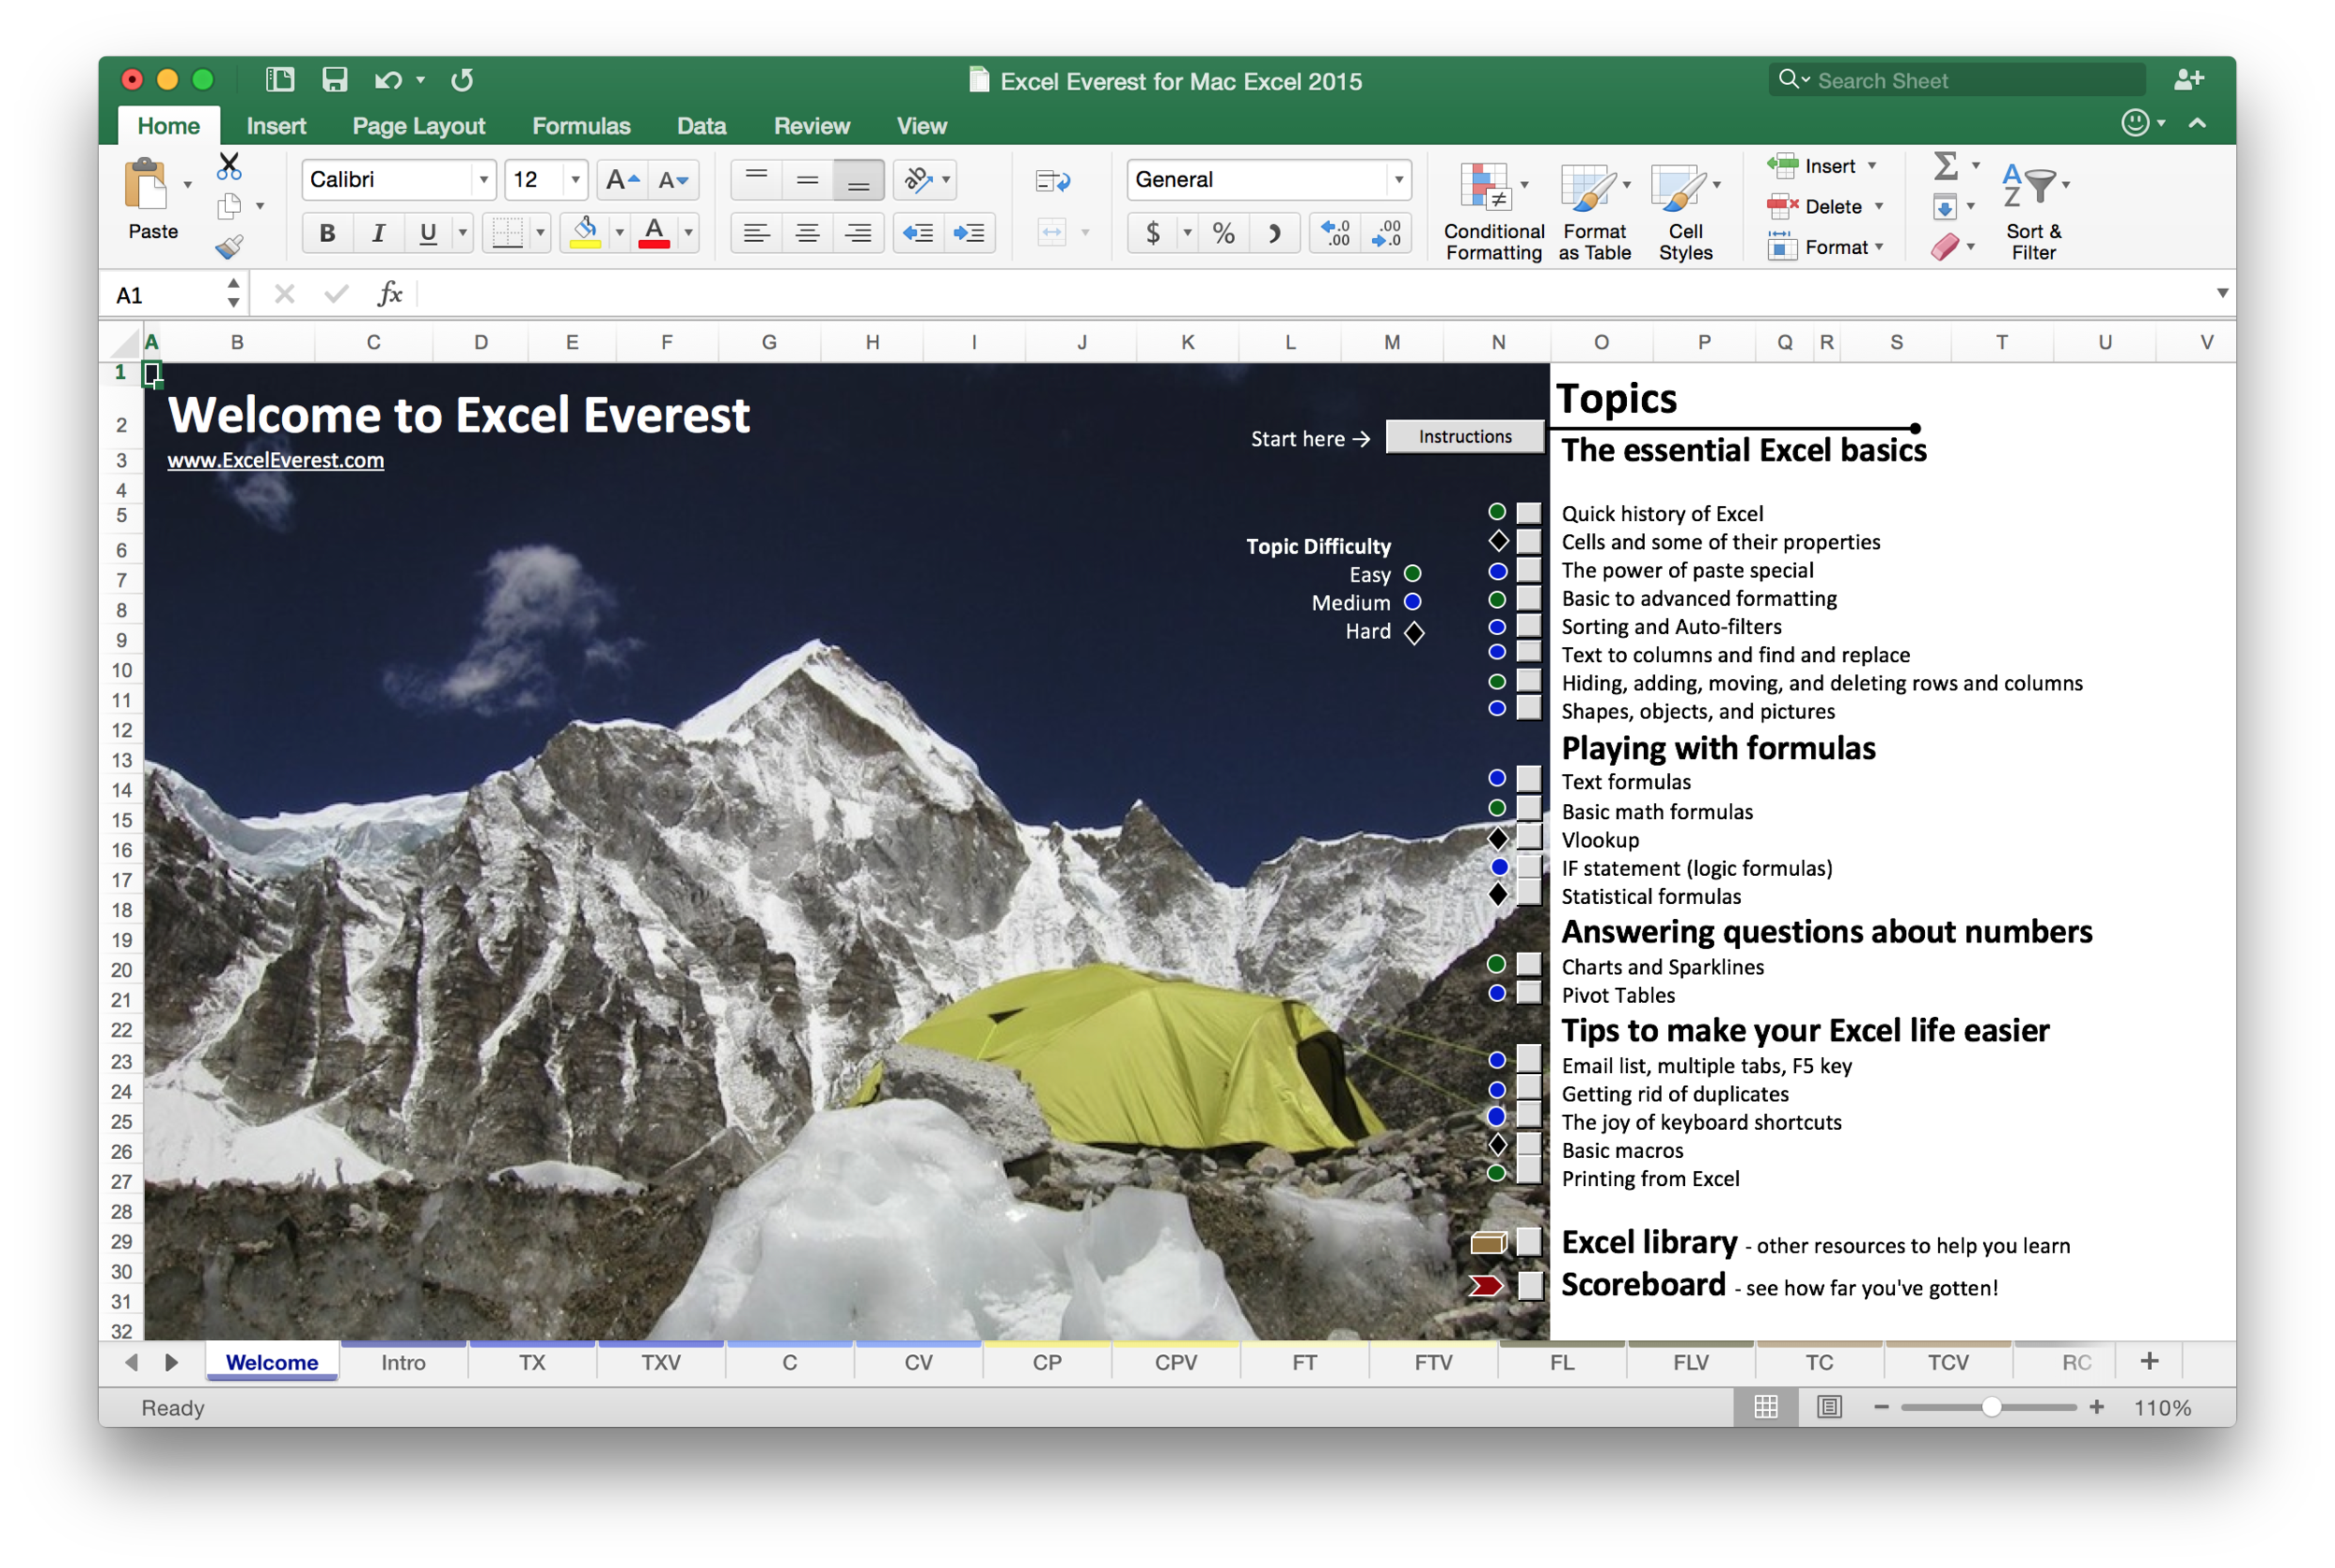 The entire tutorial is written inside Excel itself. This allows an incredible amount of innovation. As you go through Excel Everest, you'll learn by first reading about how to do something, and then immediately being able to give it a go yourself. Everyone knows that learning by doing is the best way to become proficient in a tool. Now you can do so with Excel.